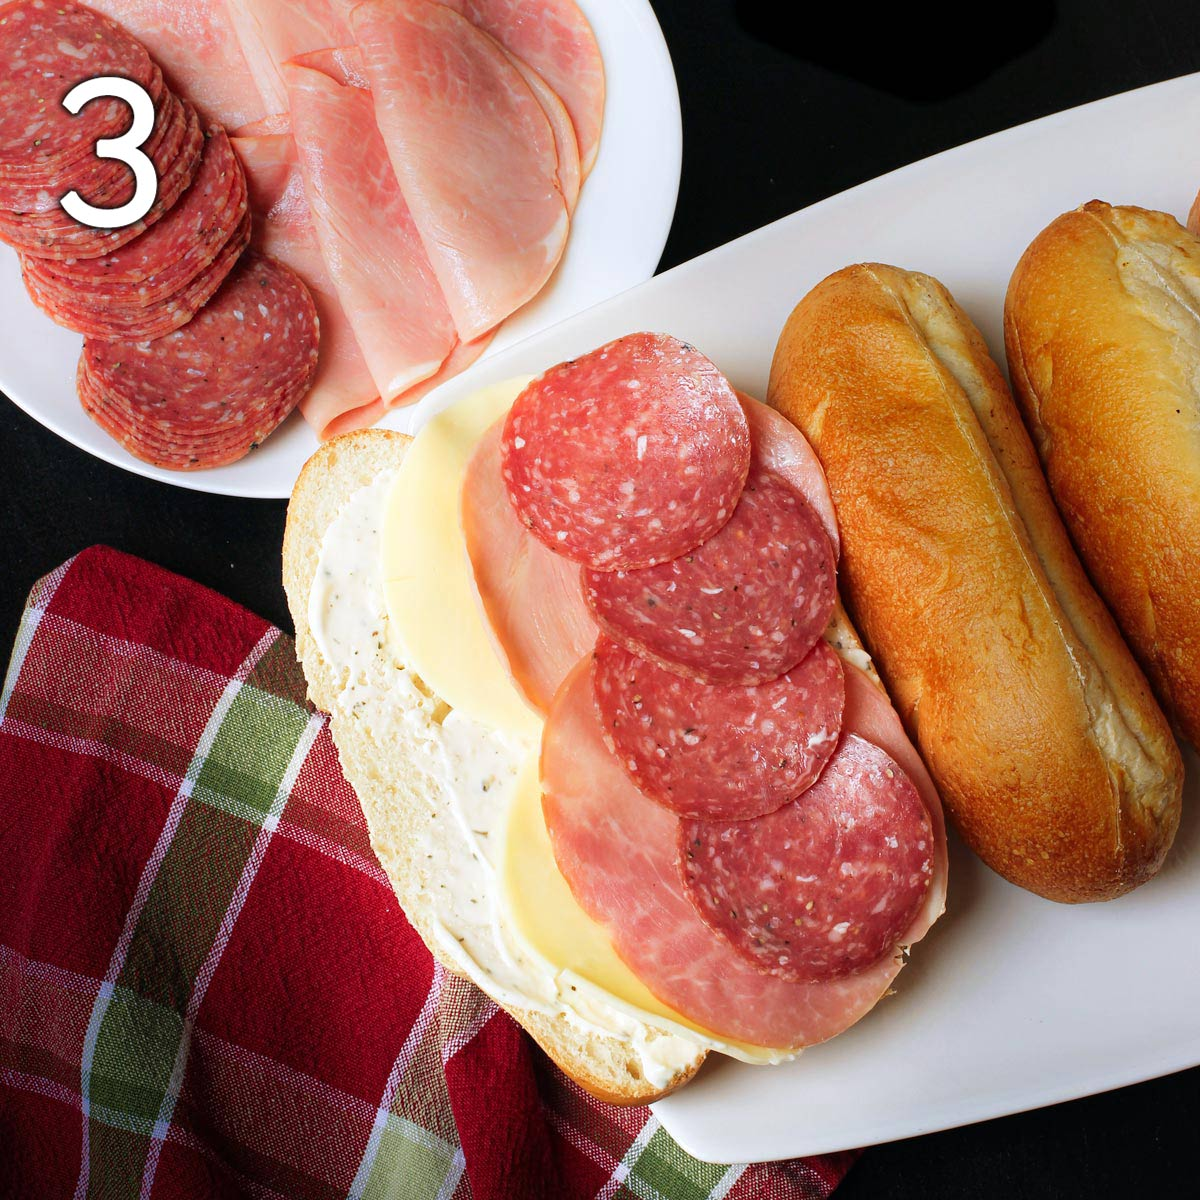 Italian cold cuts layered on provolone on sub roll.